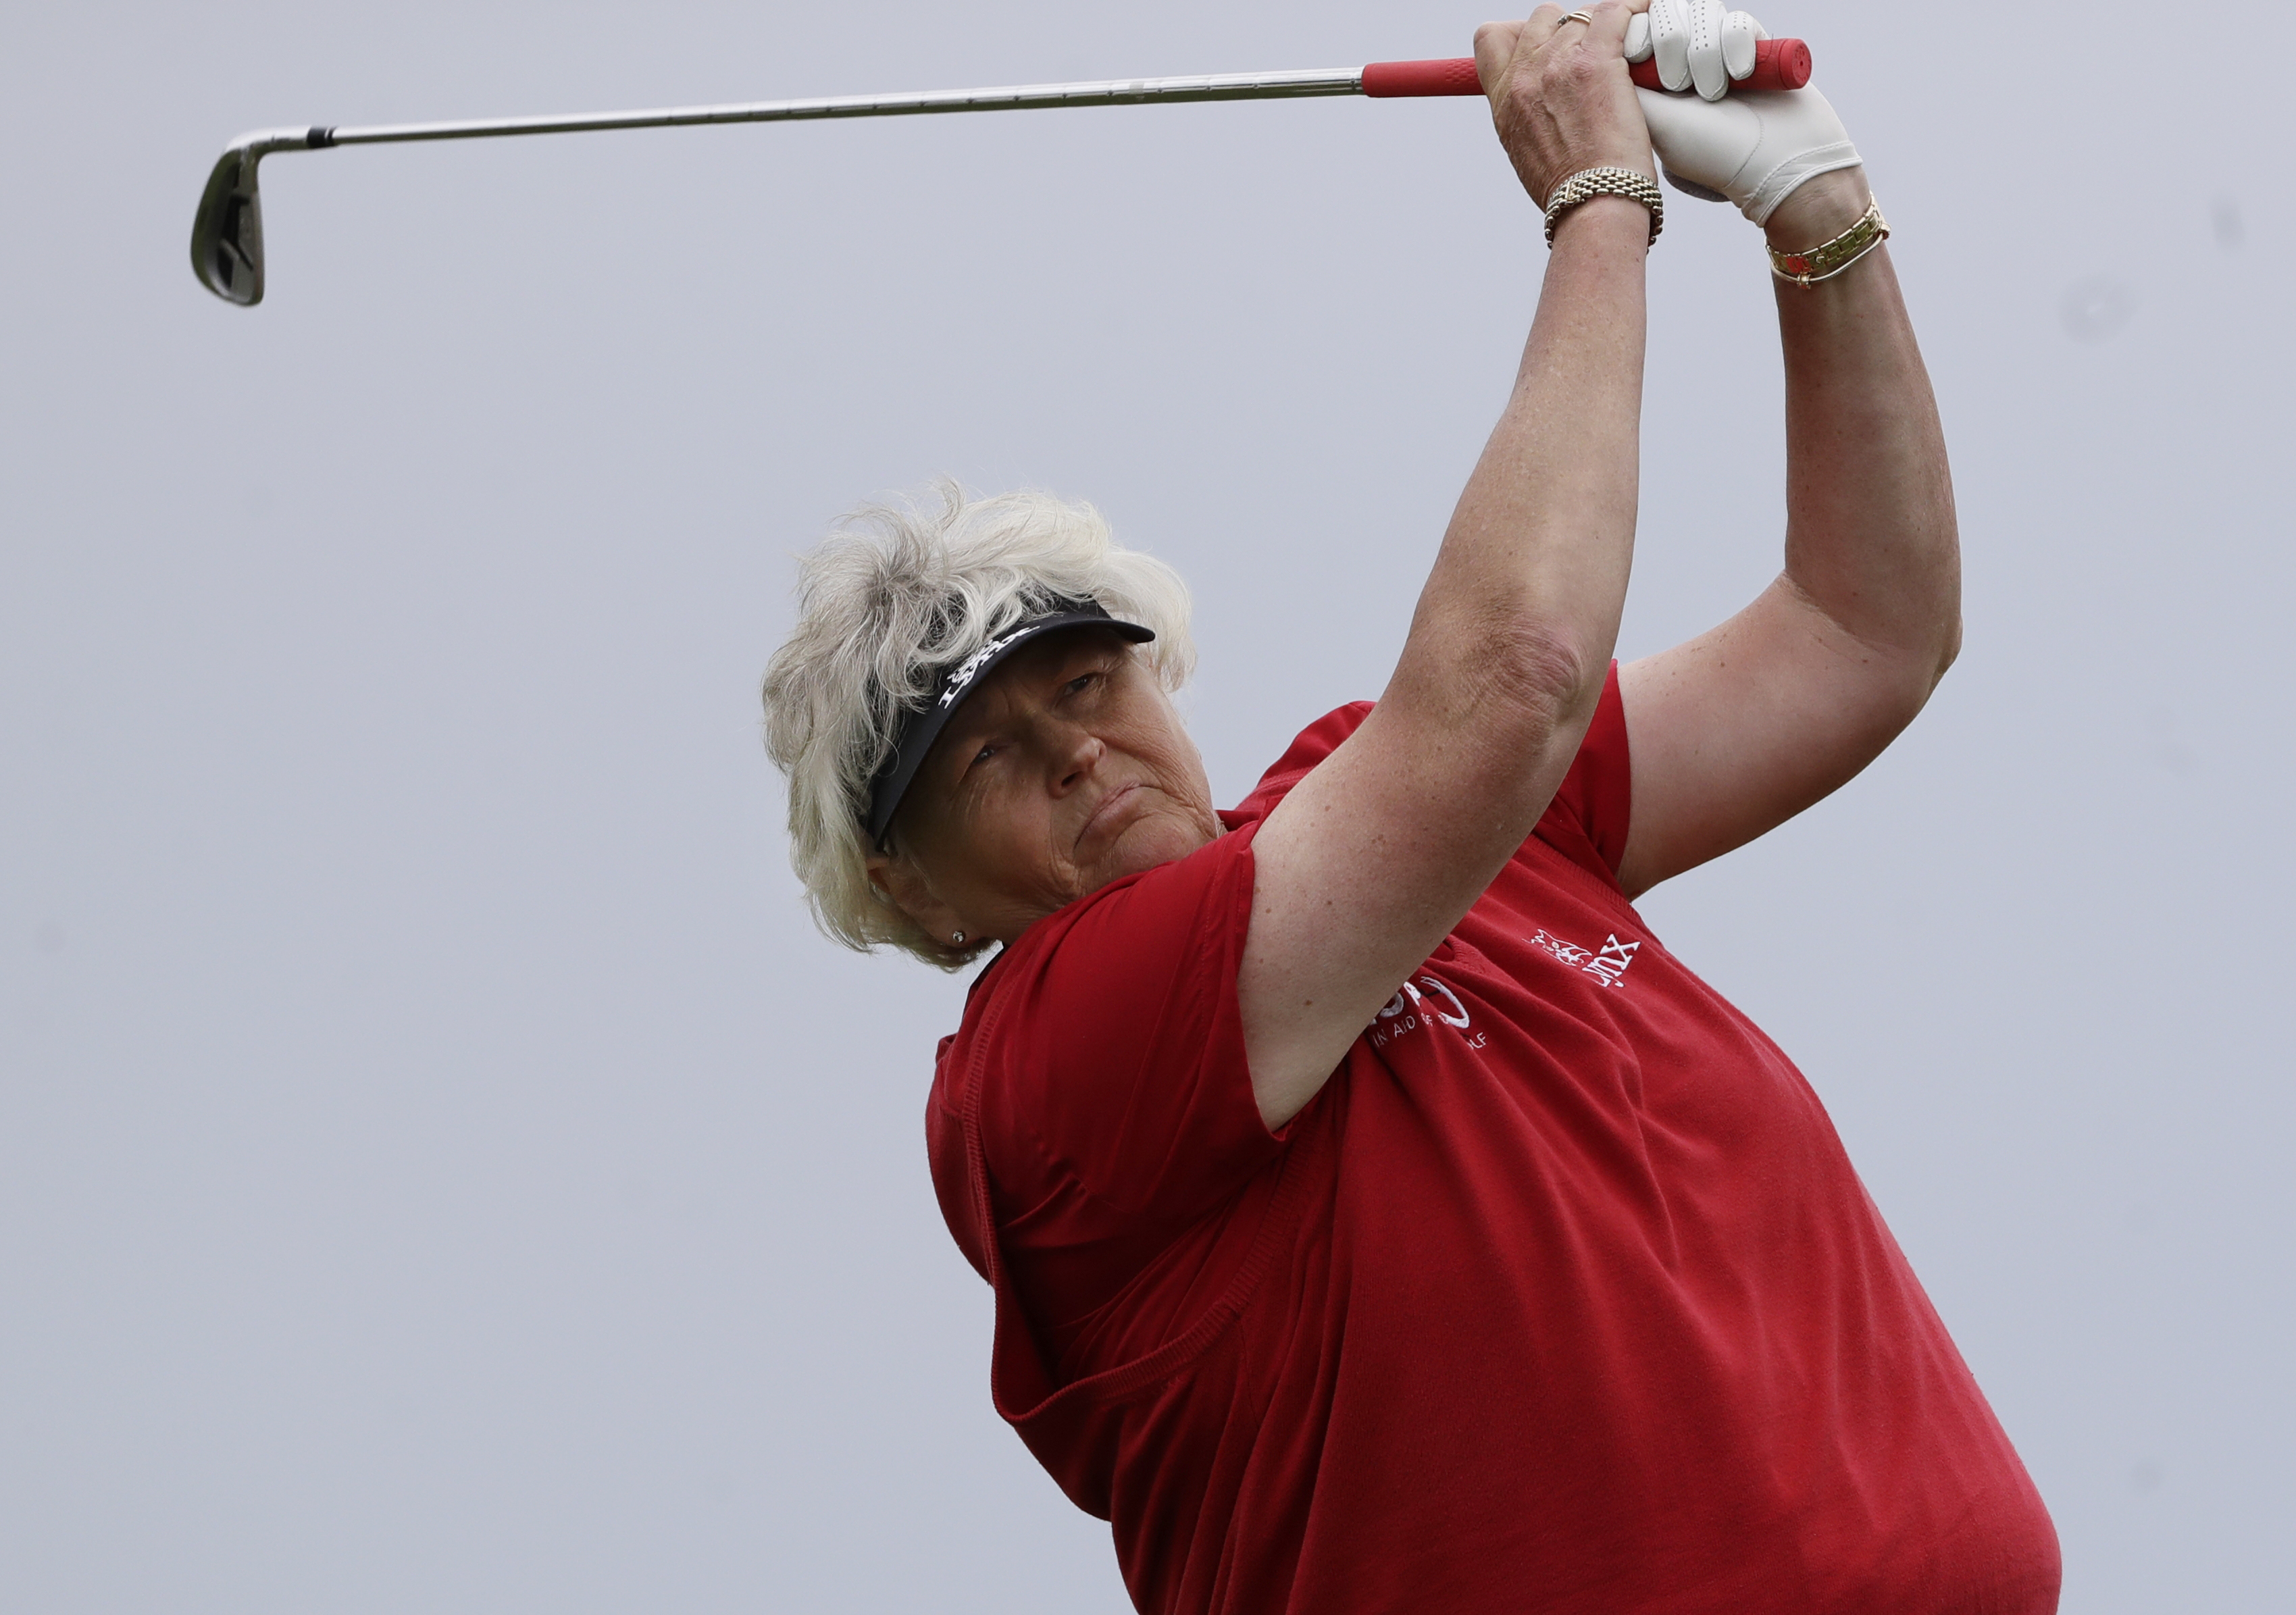 England's Laura Davies tees off on the fifth hole during the second round of the ShopRite LPGA Classic golf tournament Saturday, June 3, 2017, in Galloway Township, N.J. (AP Photo/Frank Franklin II)